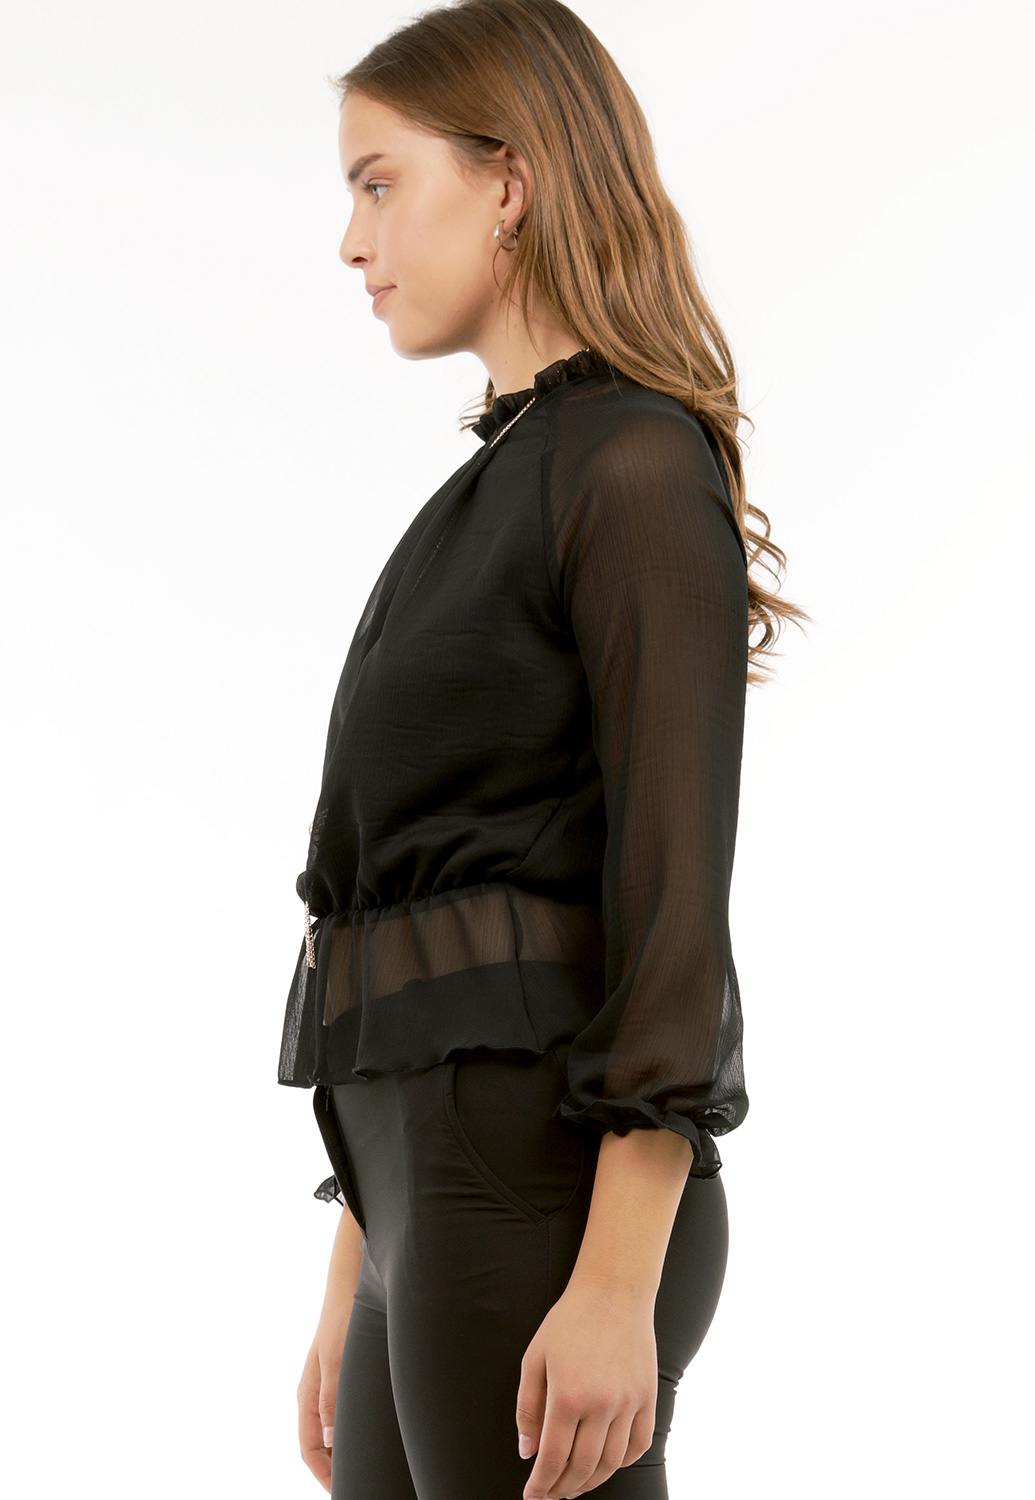 Sheer Dressy Top W/Necklace